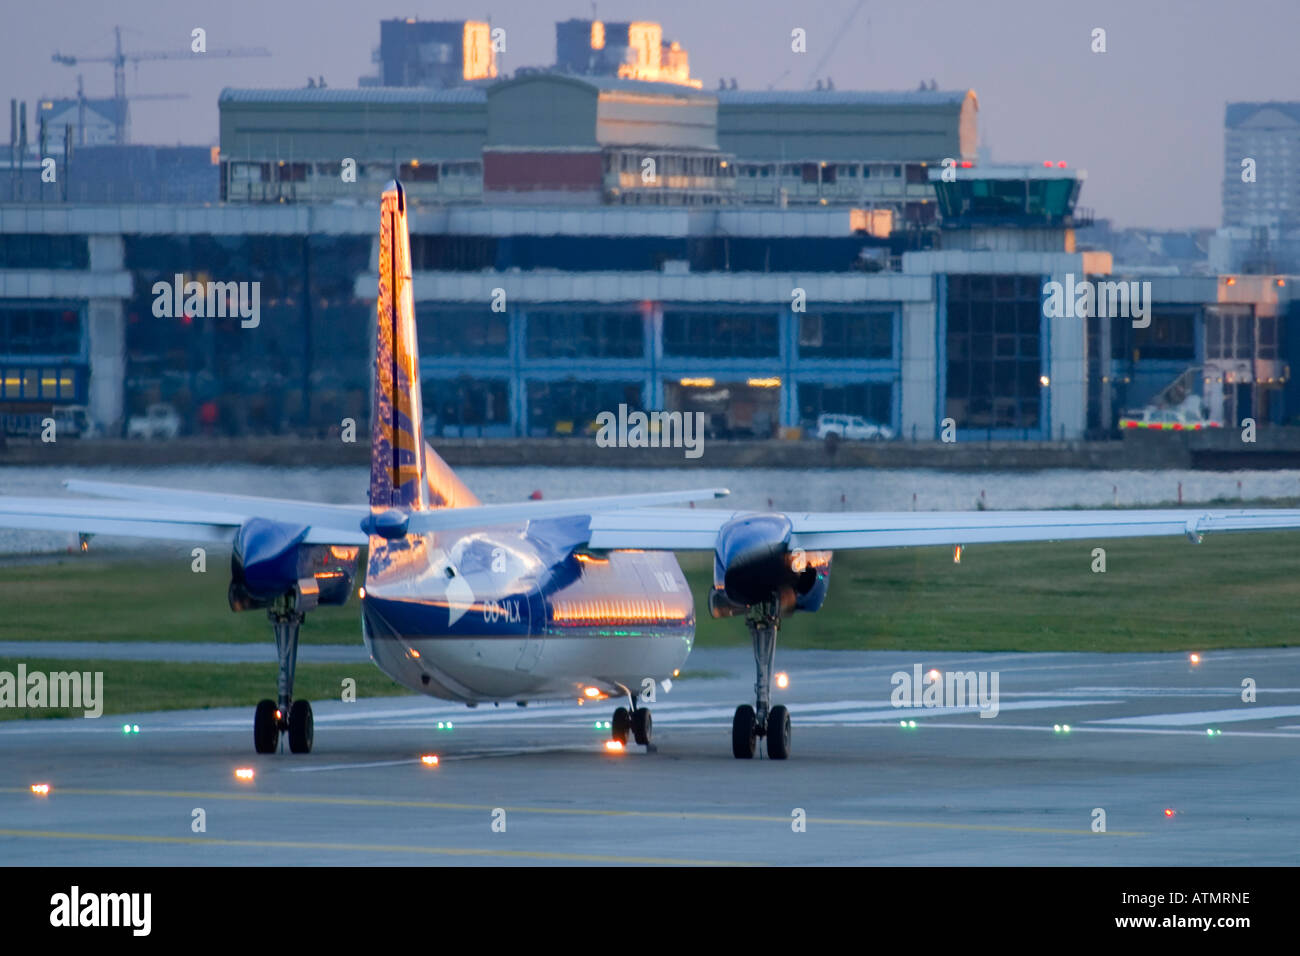 VLM Airlines Fokker 50 at London City Airport, UK - Stock Image